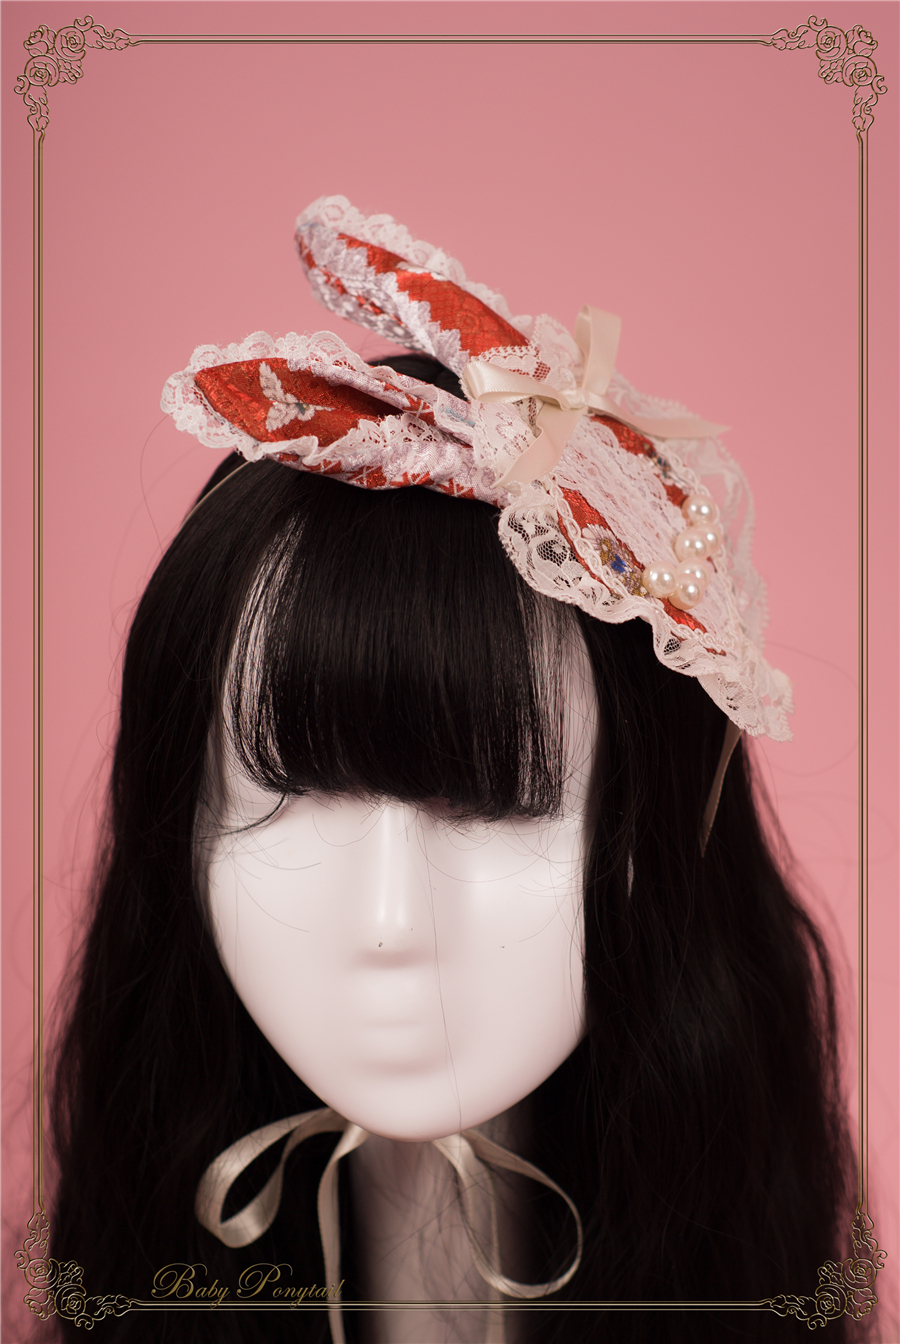 BabyPonytail_Stock Photo_My Favorite Companion_Bunny Head Dress_14.jpg